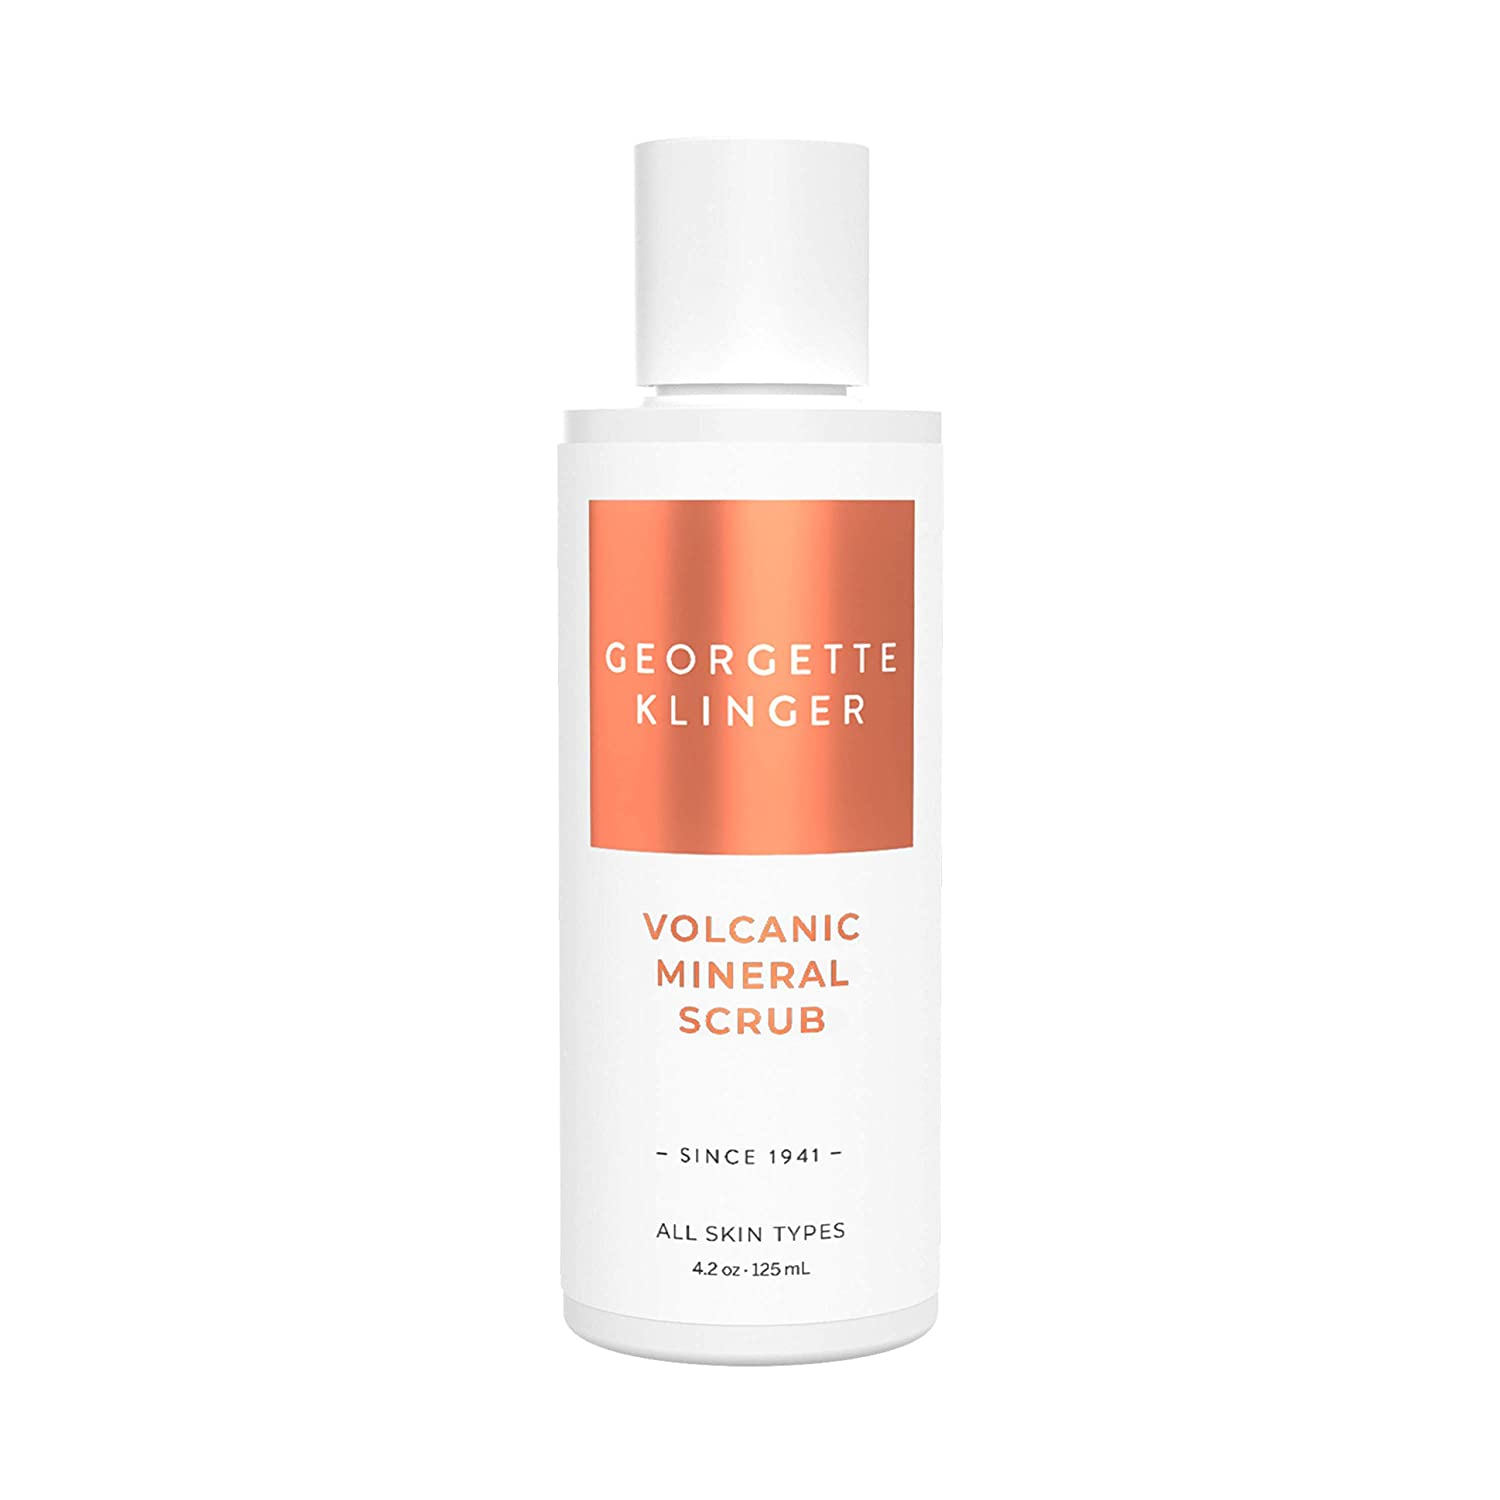 Volcanic Mineral Face Scrub By Georgette Klinger Skin Care Non Abrasive Gentle Exfoliating Facial Wash W/Natural Green Tea Extract For All Skin Types